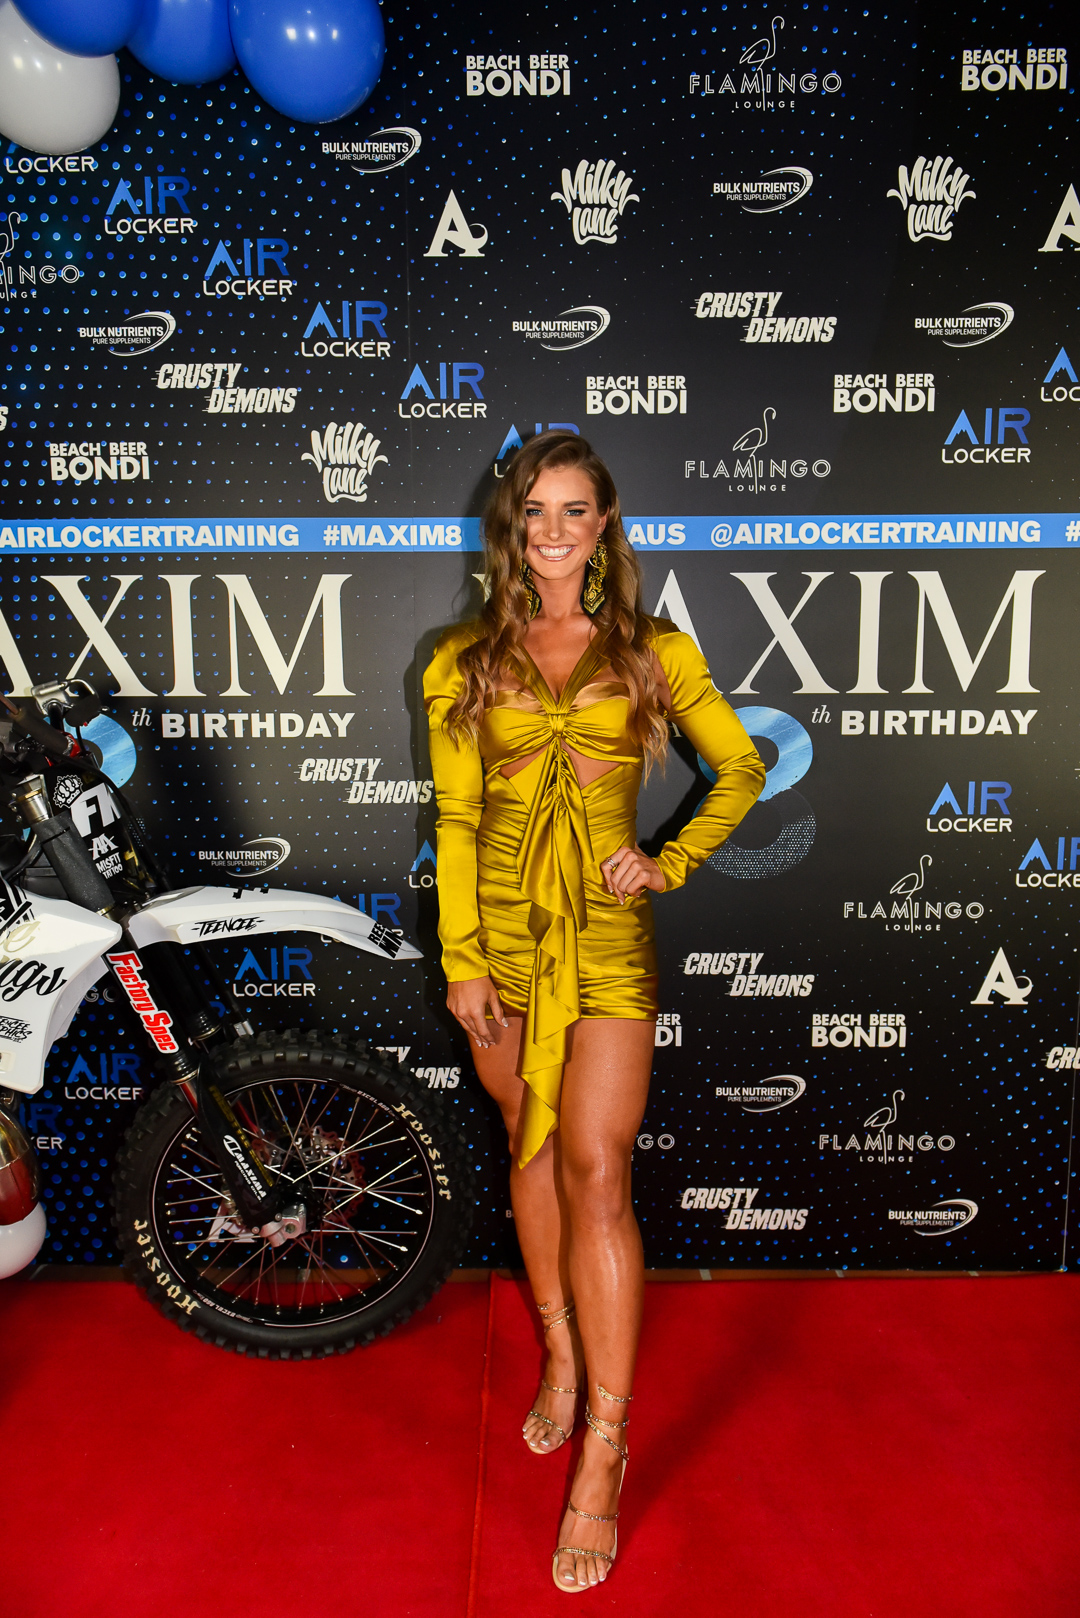 MAXIM_Australia_8th Birthday_9